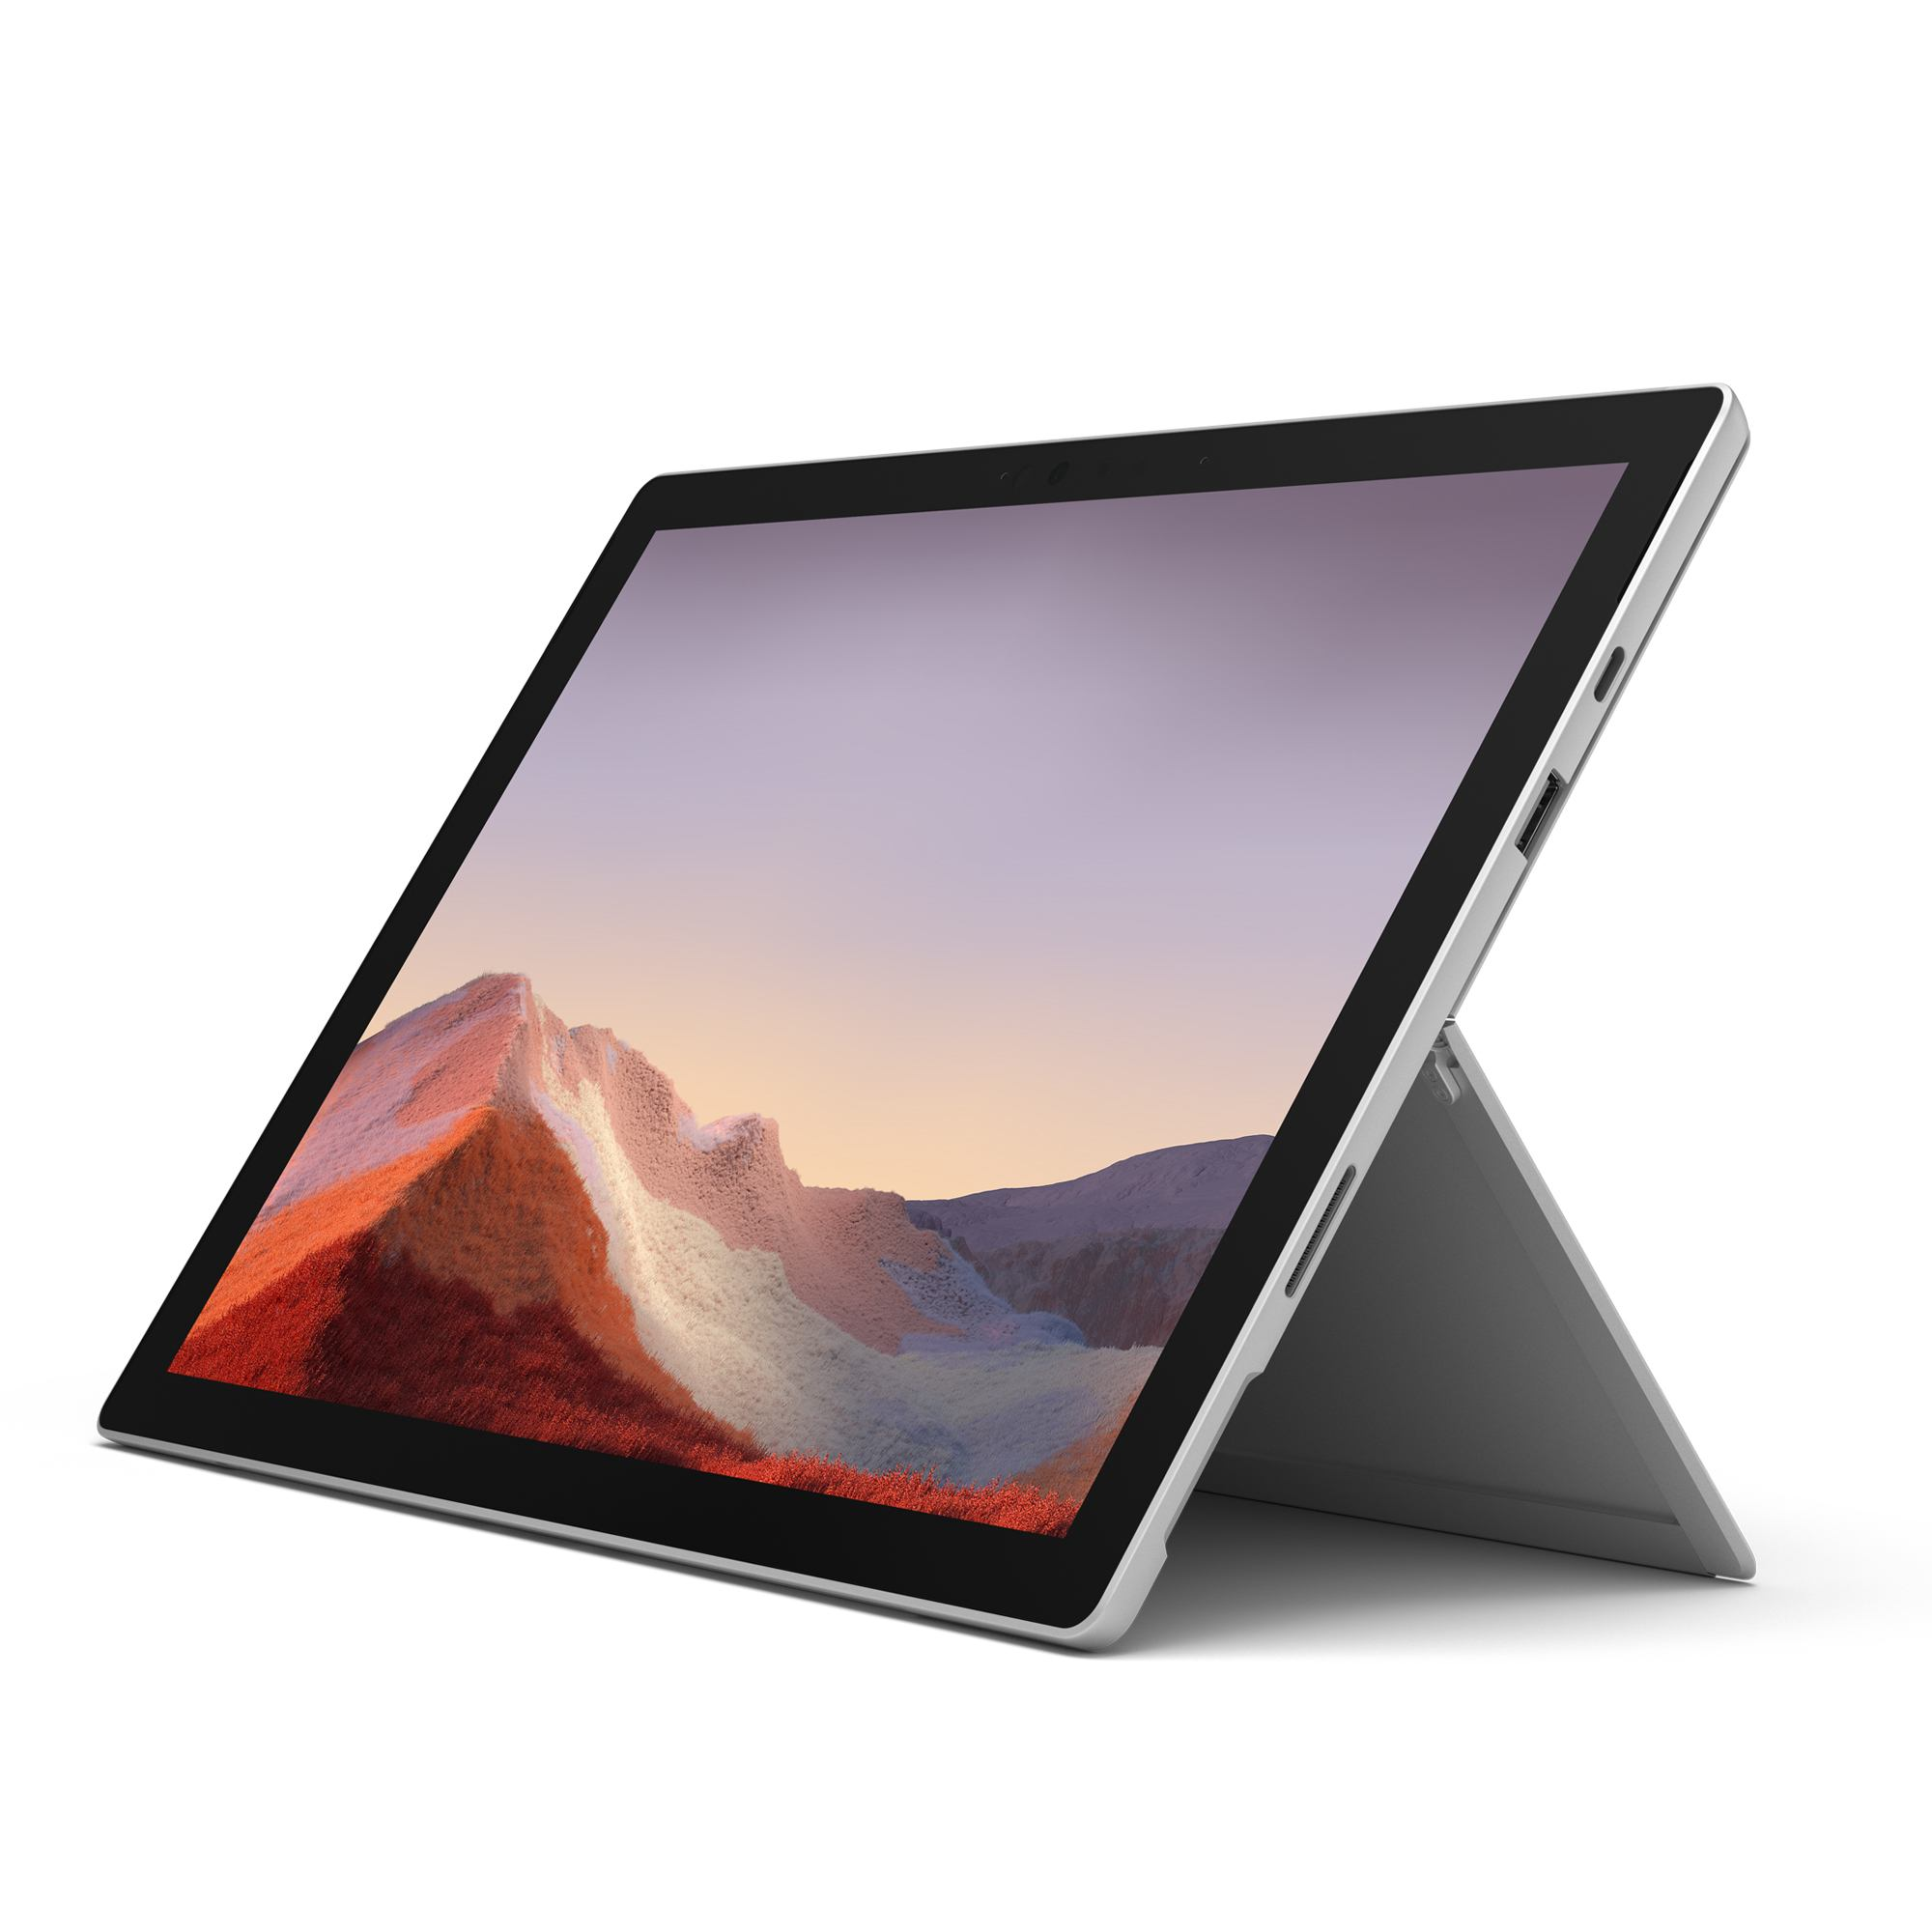 2022026-Surface-Pro-7-Intel-Core-i5-10th-12-3-8GB-256SSD-platinum-Win10pro